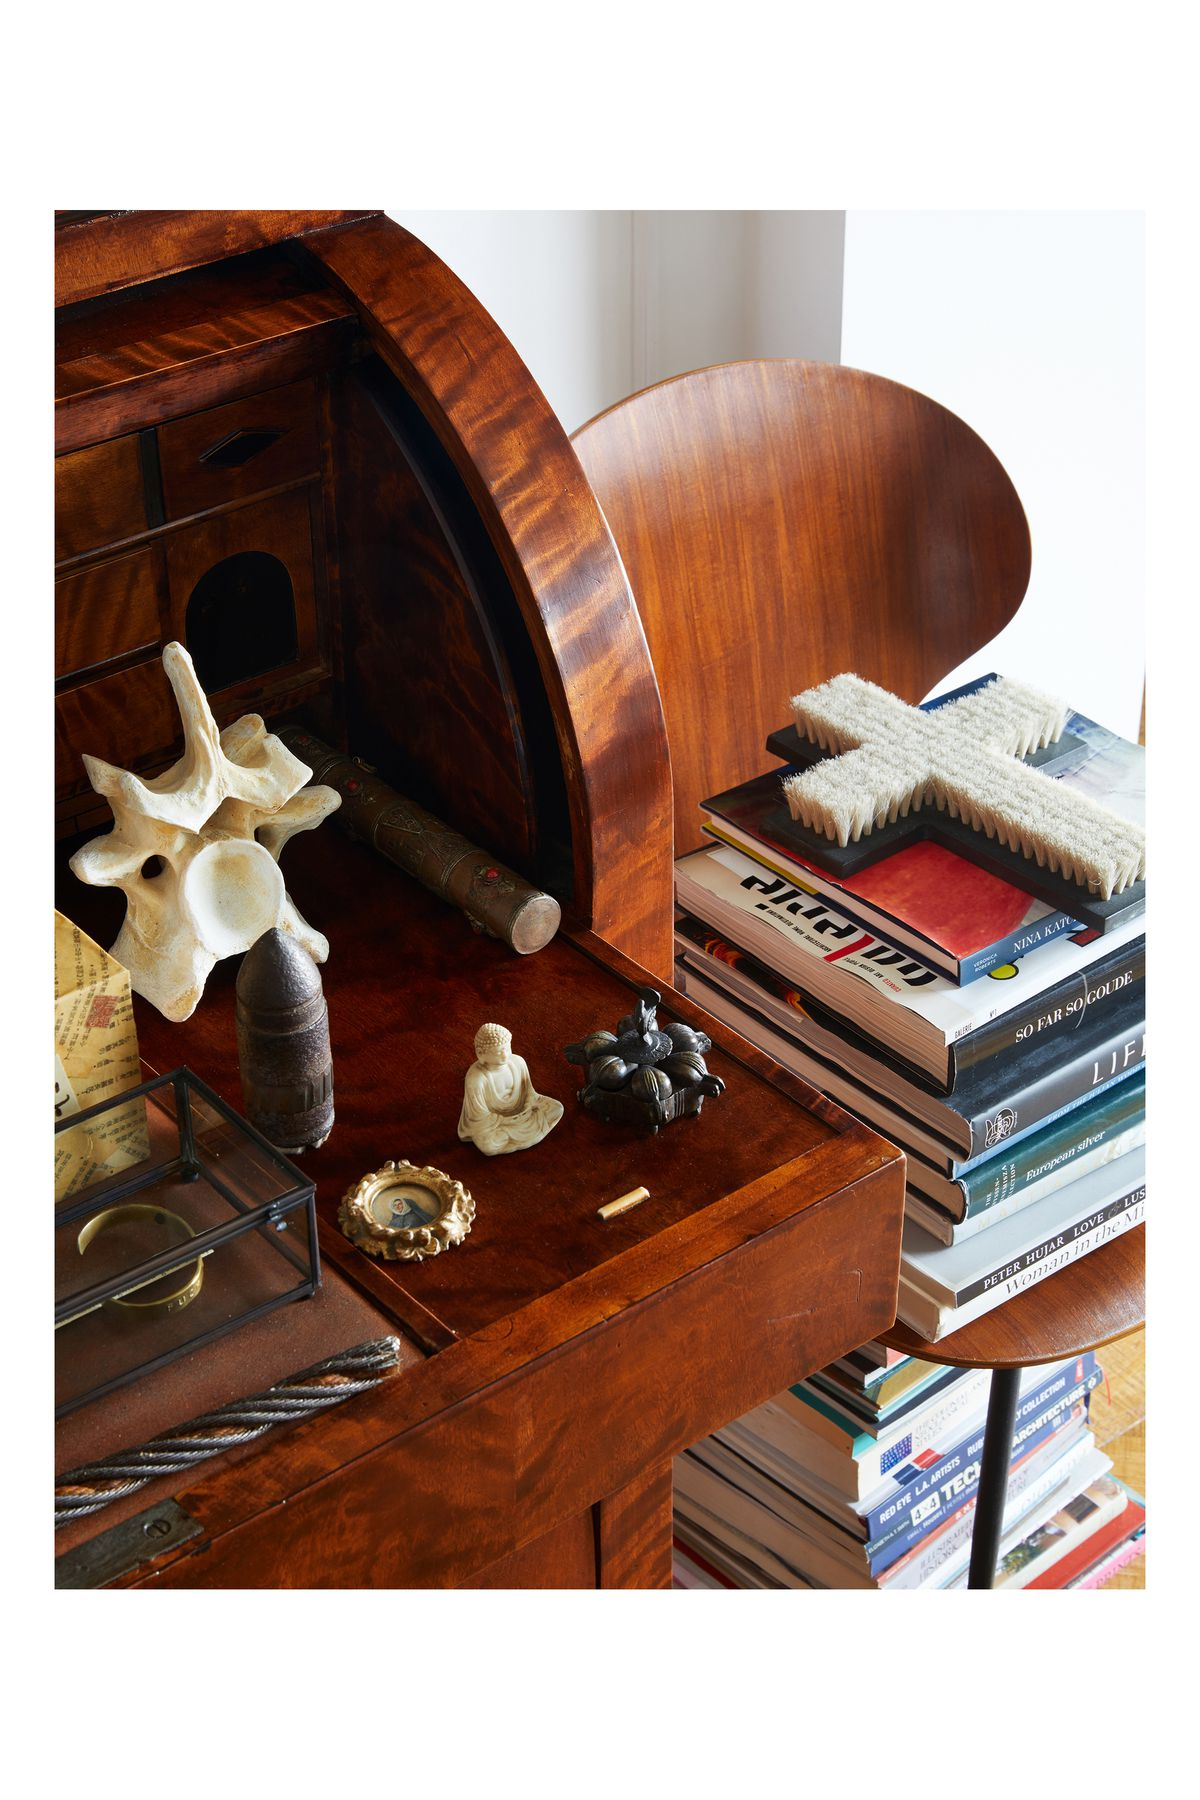 A detail shot showing small objects Campbell displays on a roll-top desk.